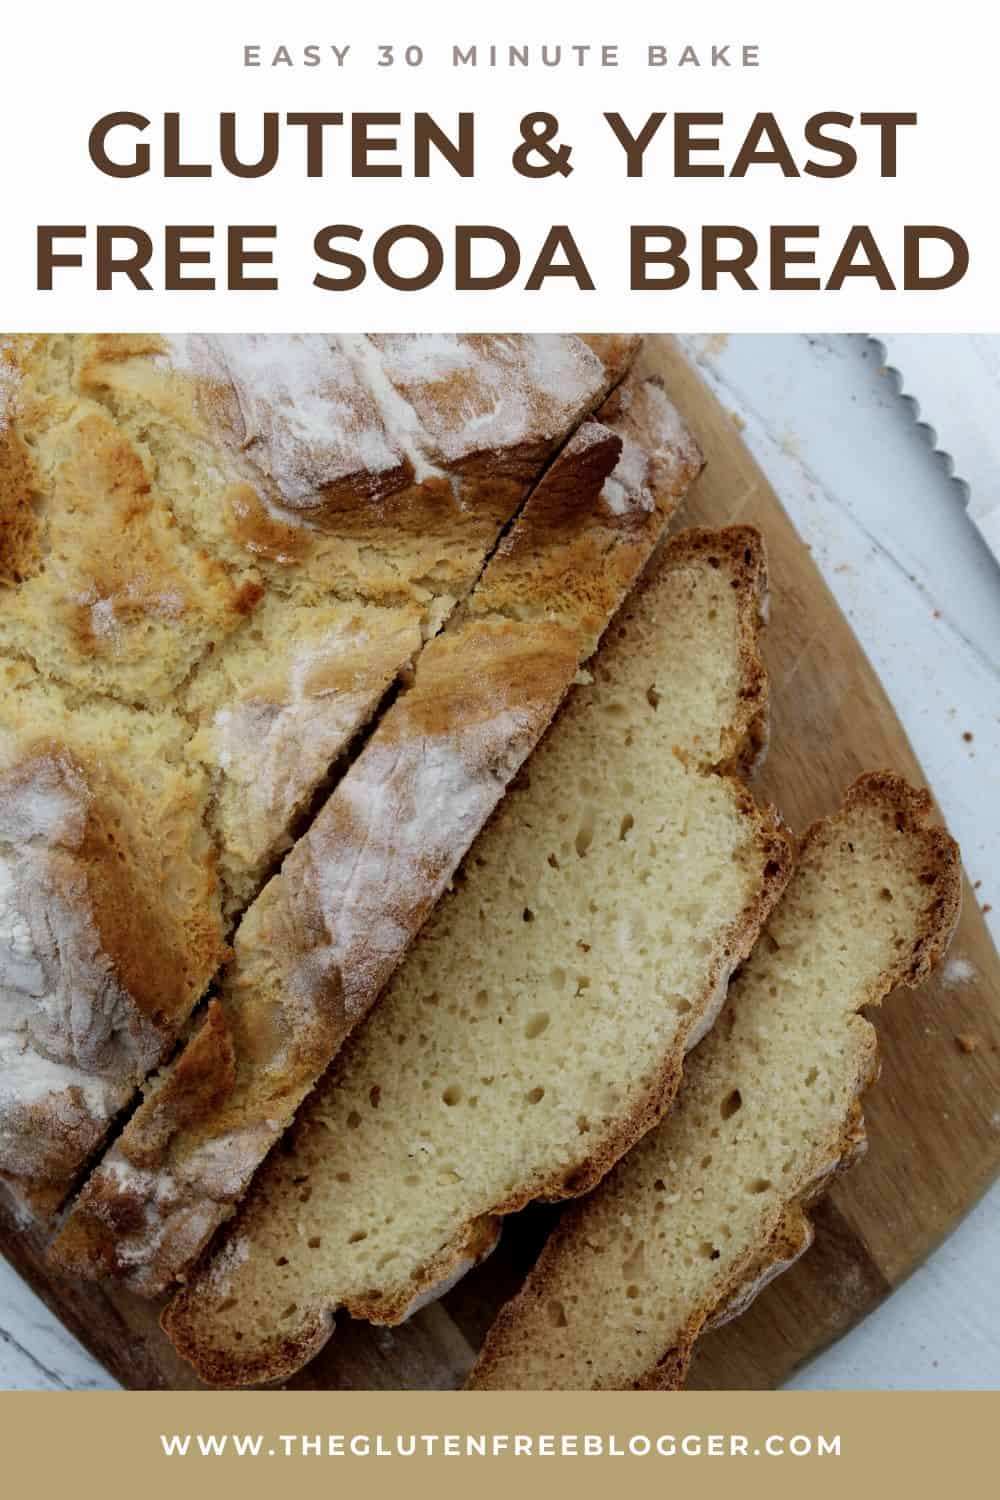 gluten free soda bread yeast free bread recipe easy baking at home (3)